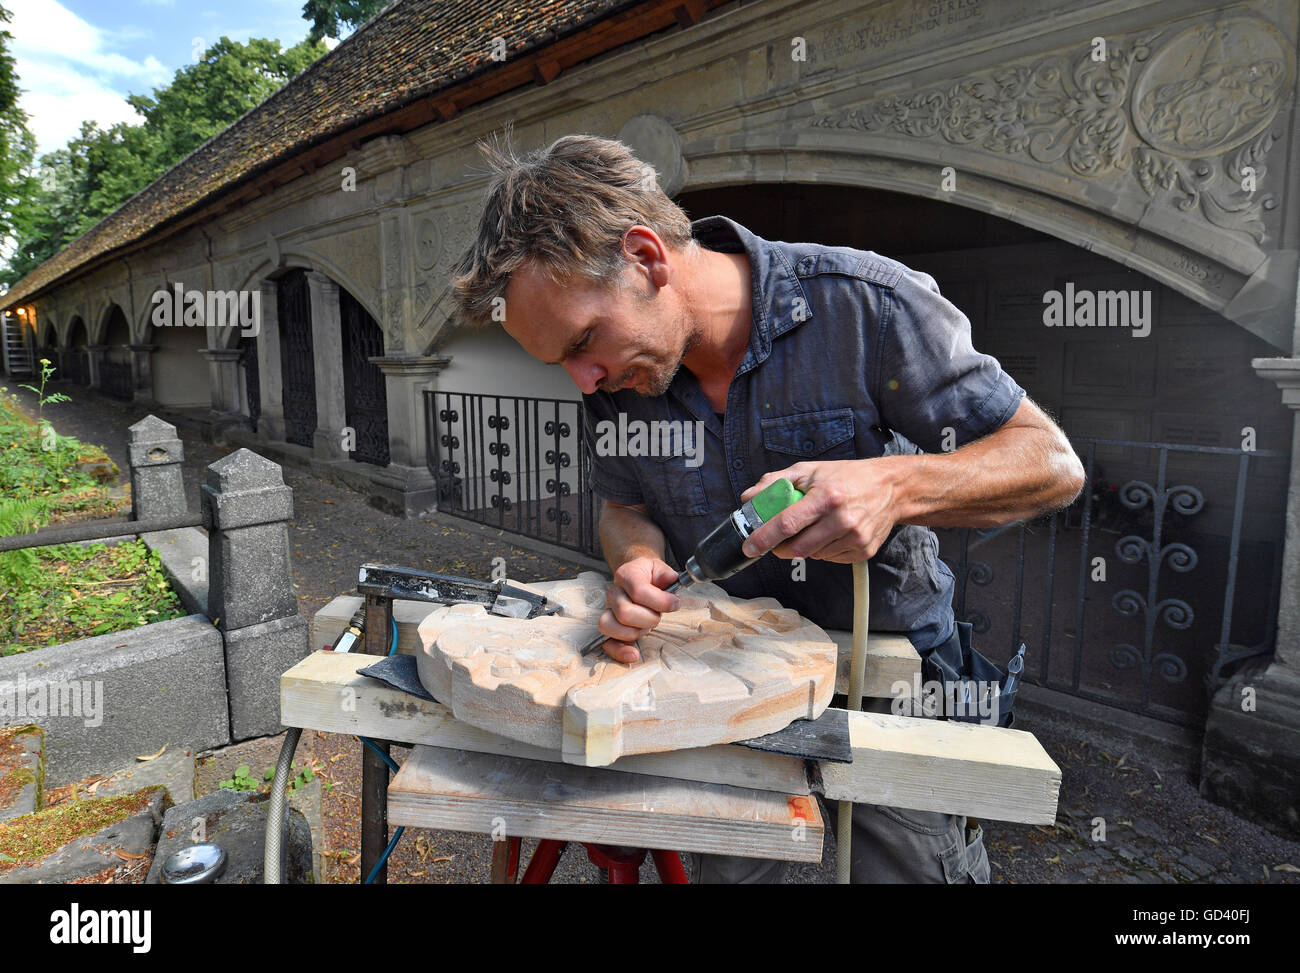 Sculptor Martin Roedel working on a sandstone relief in front of the arcade arches at Stadtgottesacker in Halle/Saale, Stock Photo